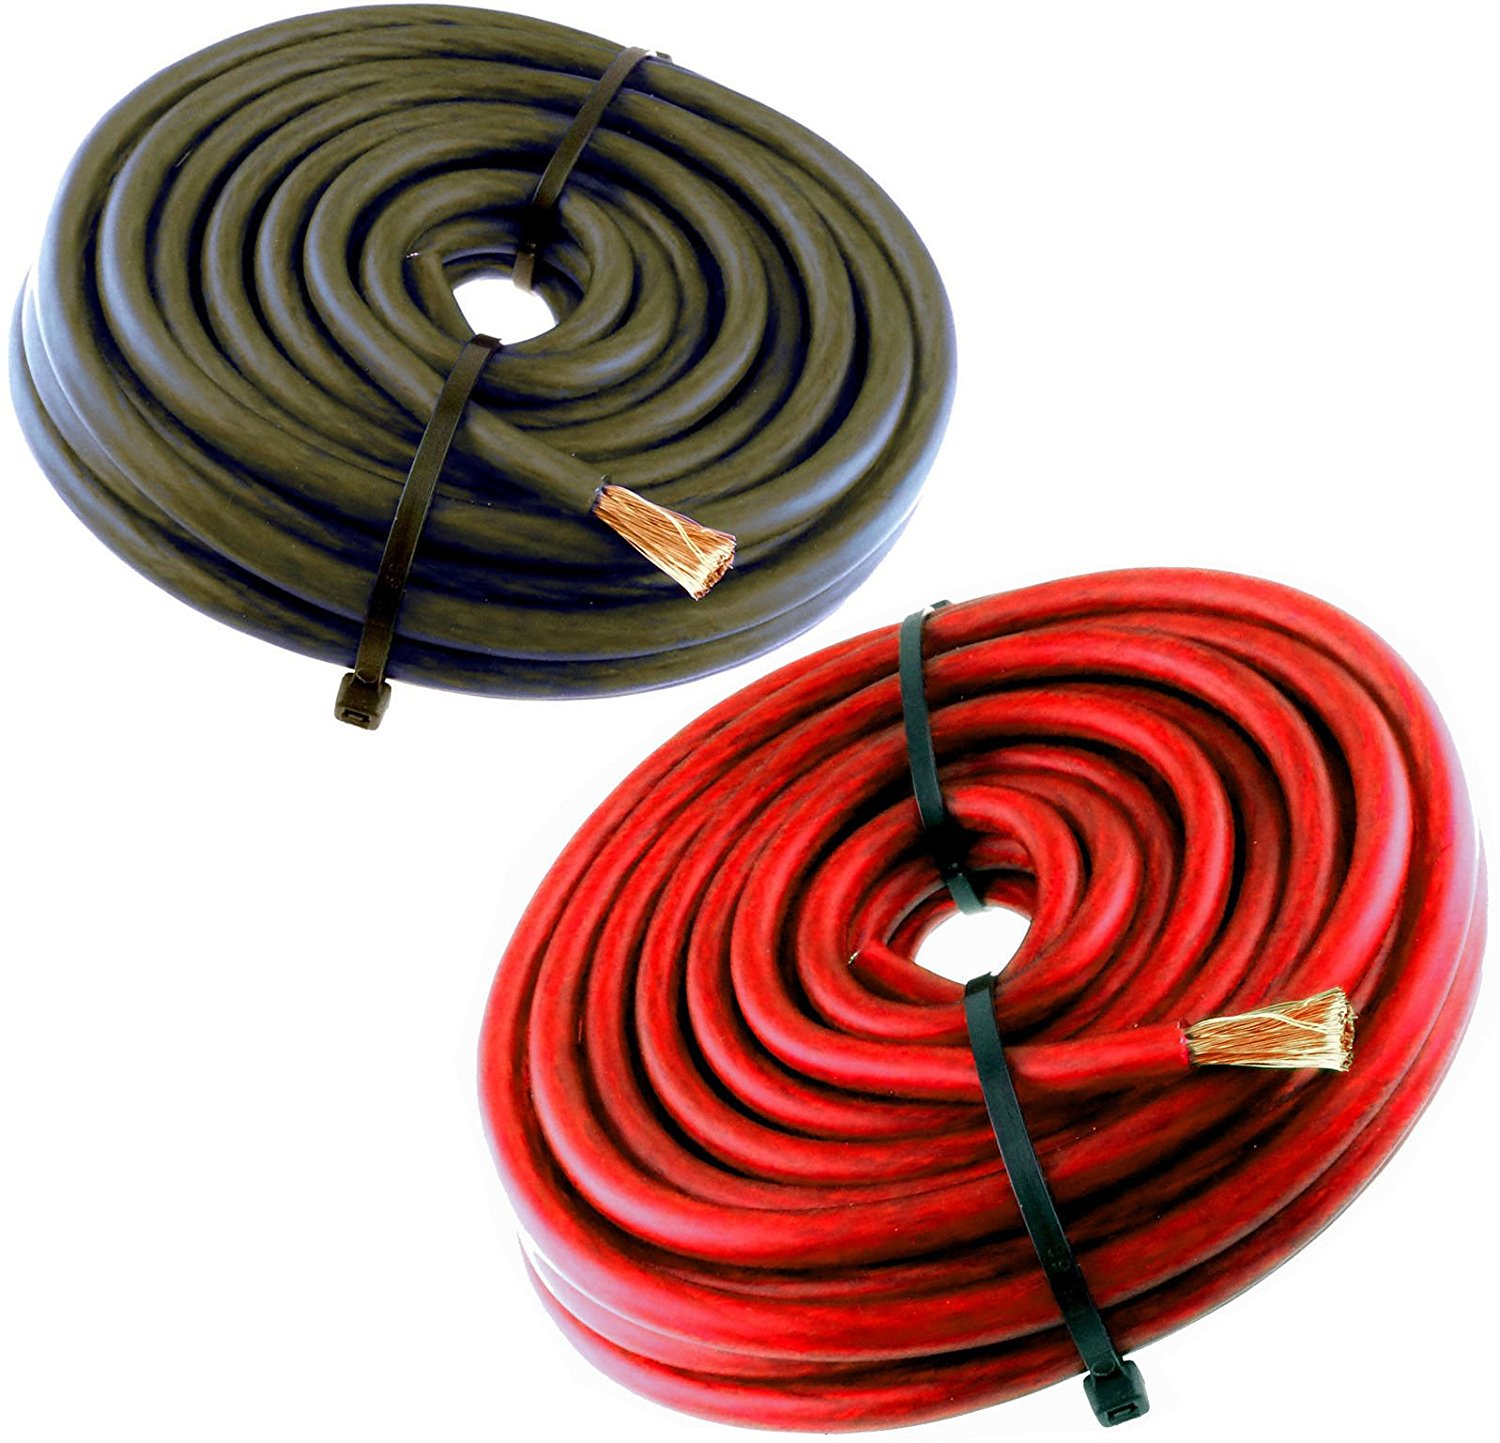 10FT 8 Gauge Primary Speaker Wire Amp Power Ground Car Audio 5' Red + 5' Black